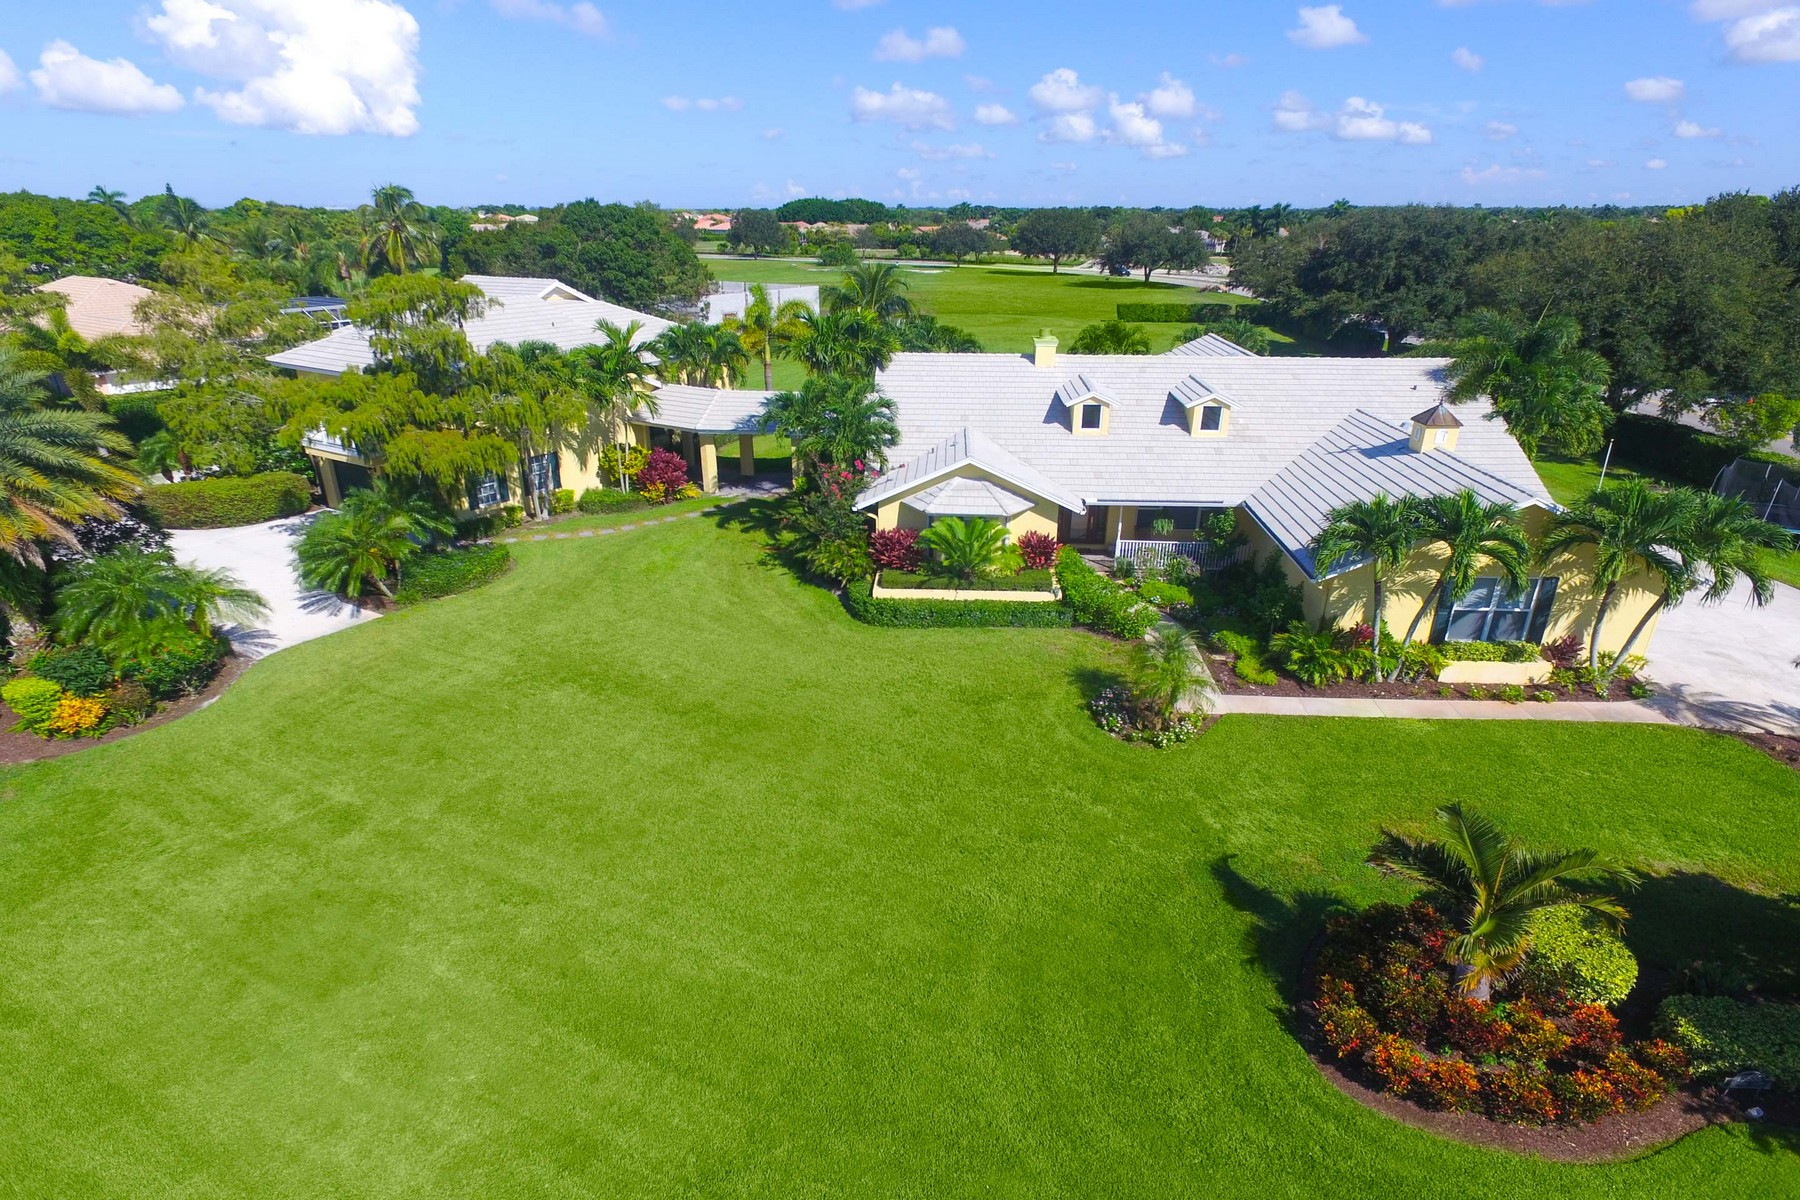 Single Family Home for Sale at 15535 Sunward Street Aero Club, Wellington, Florida, 33414 United States